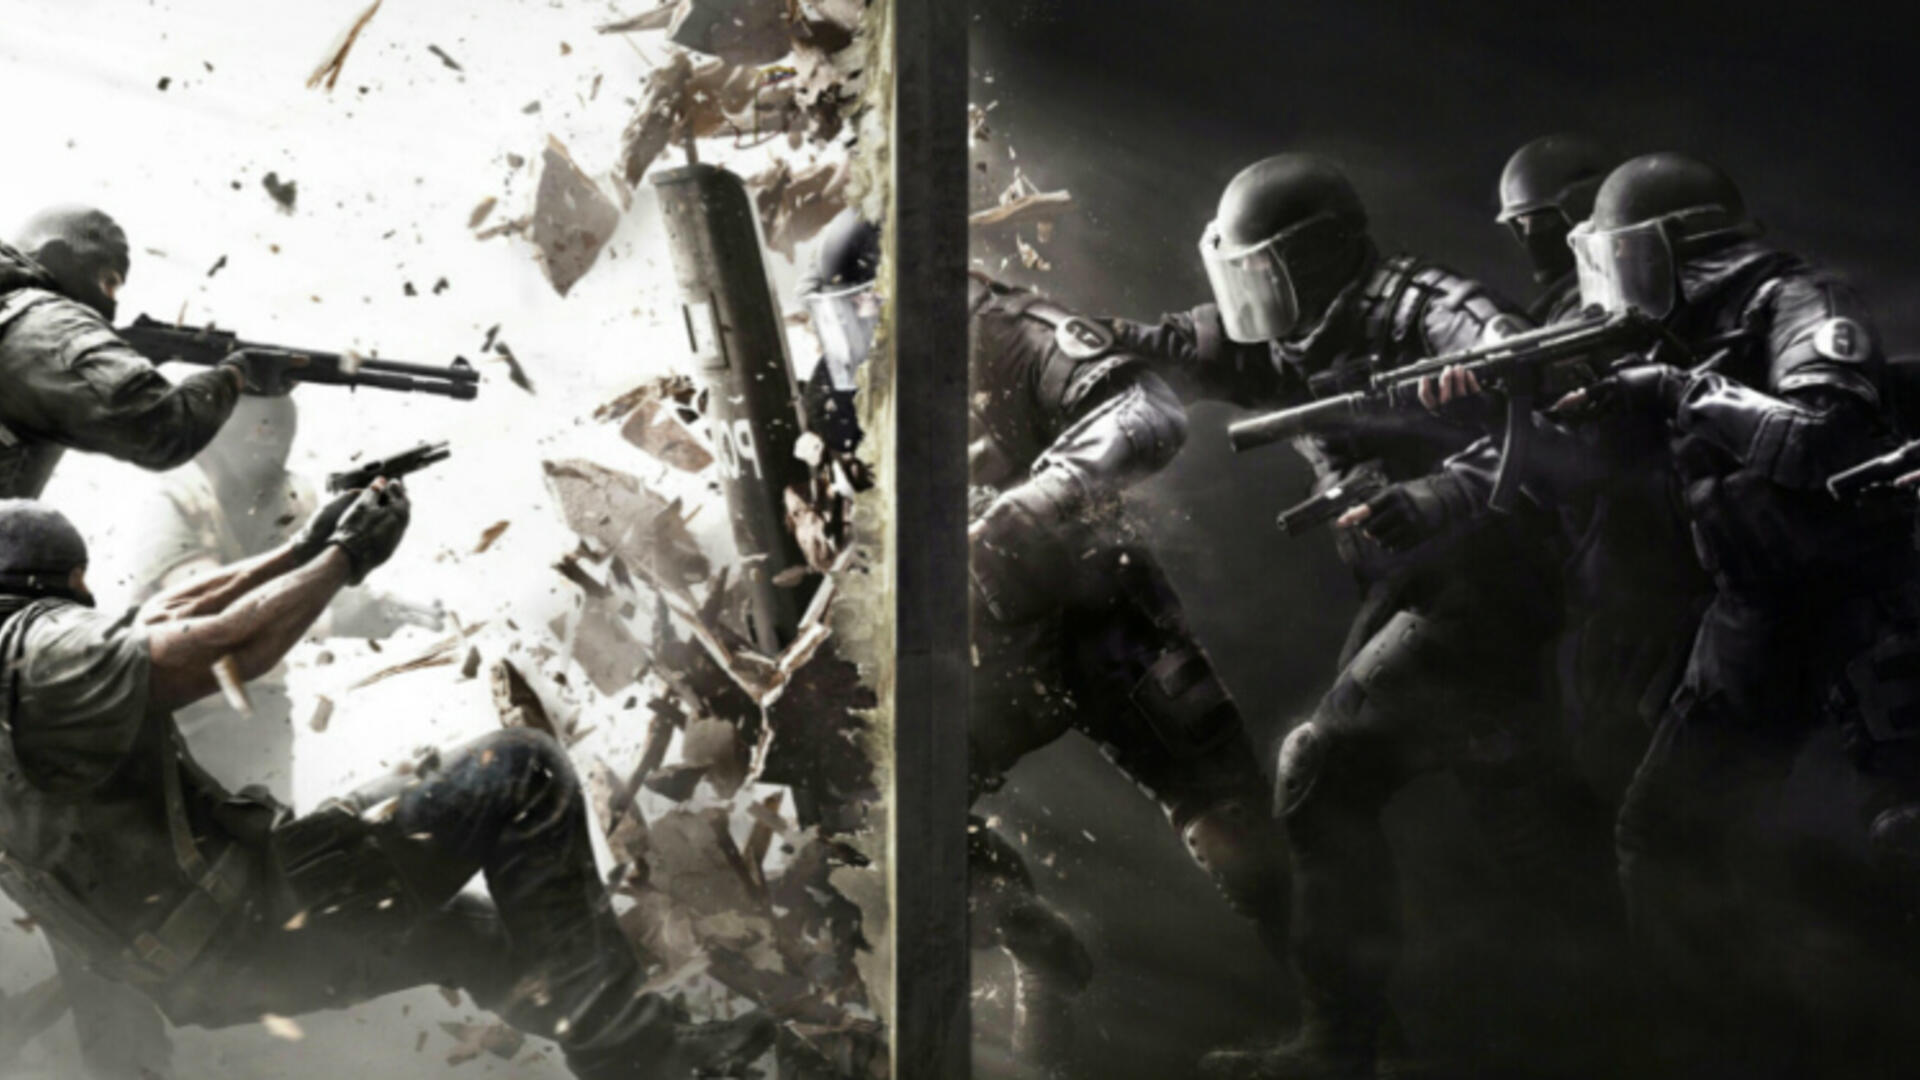 Rainbow Six Siege Interview: Finding Meaning in Destruction